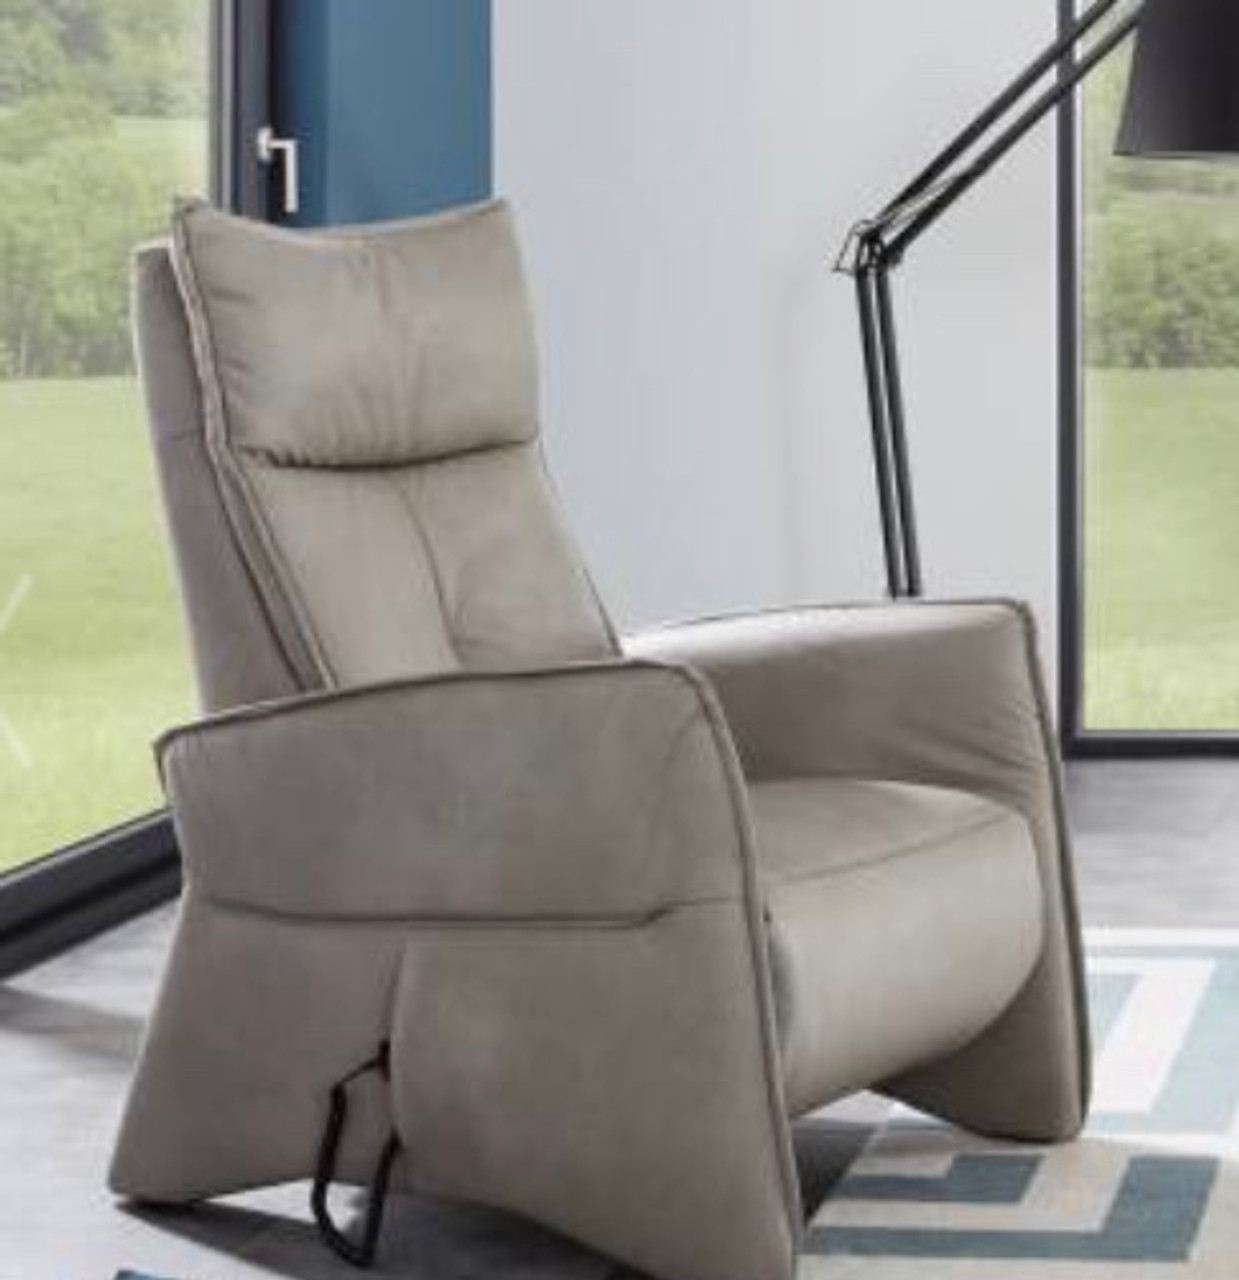 Magnificent Himolla Albatross Powered Recliner Chair Ships Free Caraccident5 Cool Chair Designs And Ideas Caraccident5Info